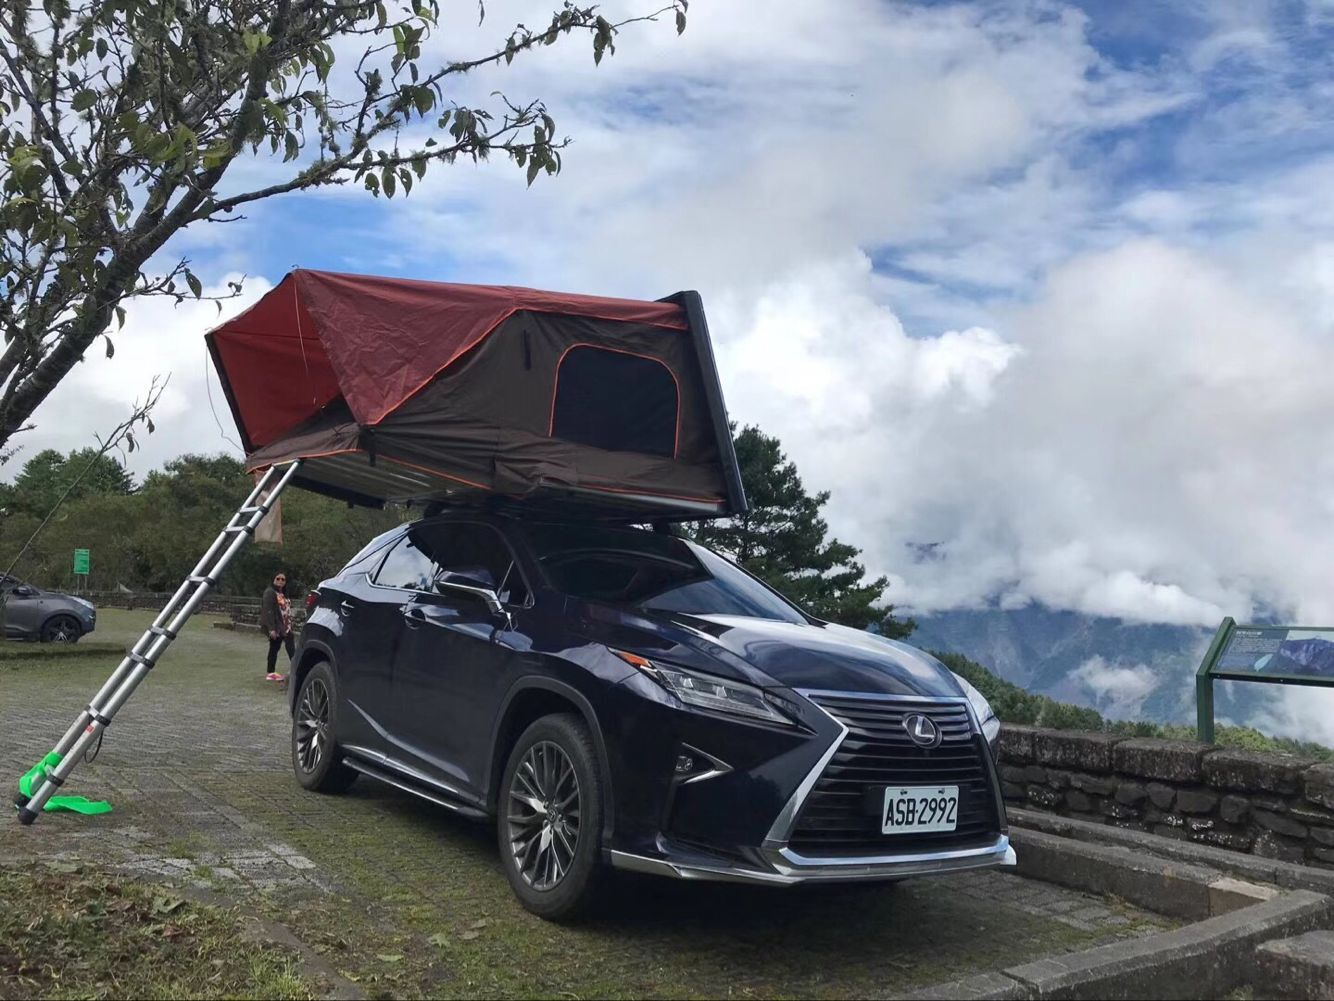 Pop Up Portable Camping Car Roof Top Tent For Outdoor Fits Most Vehicles Equipped With Cross Bars And Roof Rails Closed Dimensi Top Tents Roof Top Tent Rooftop